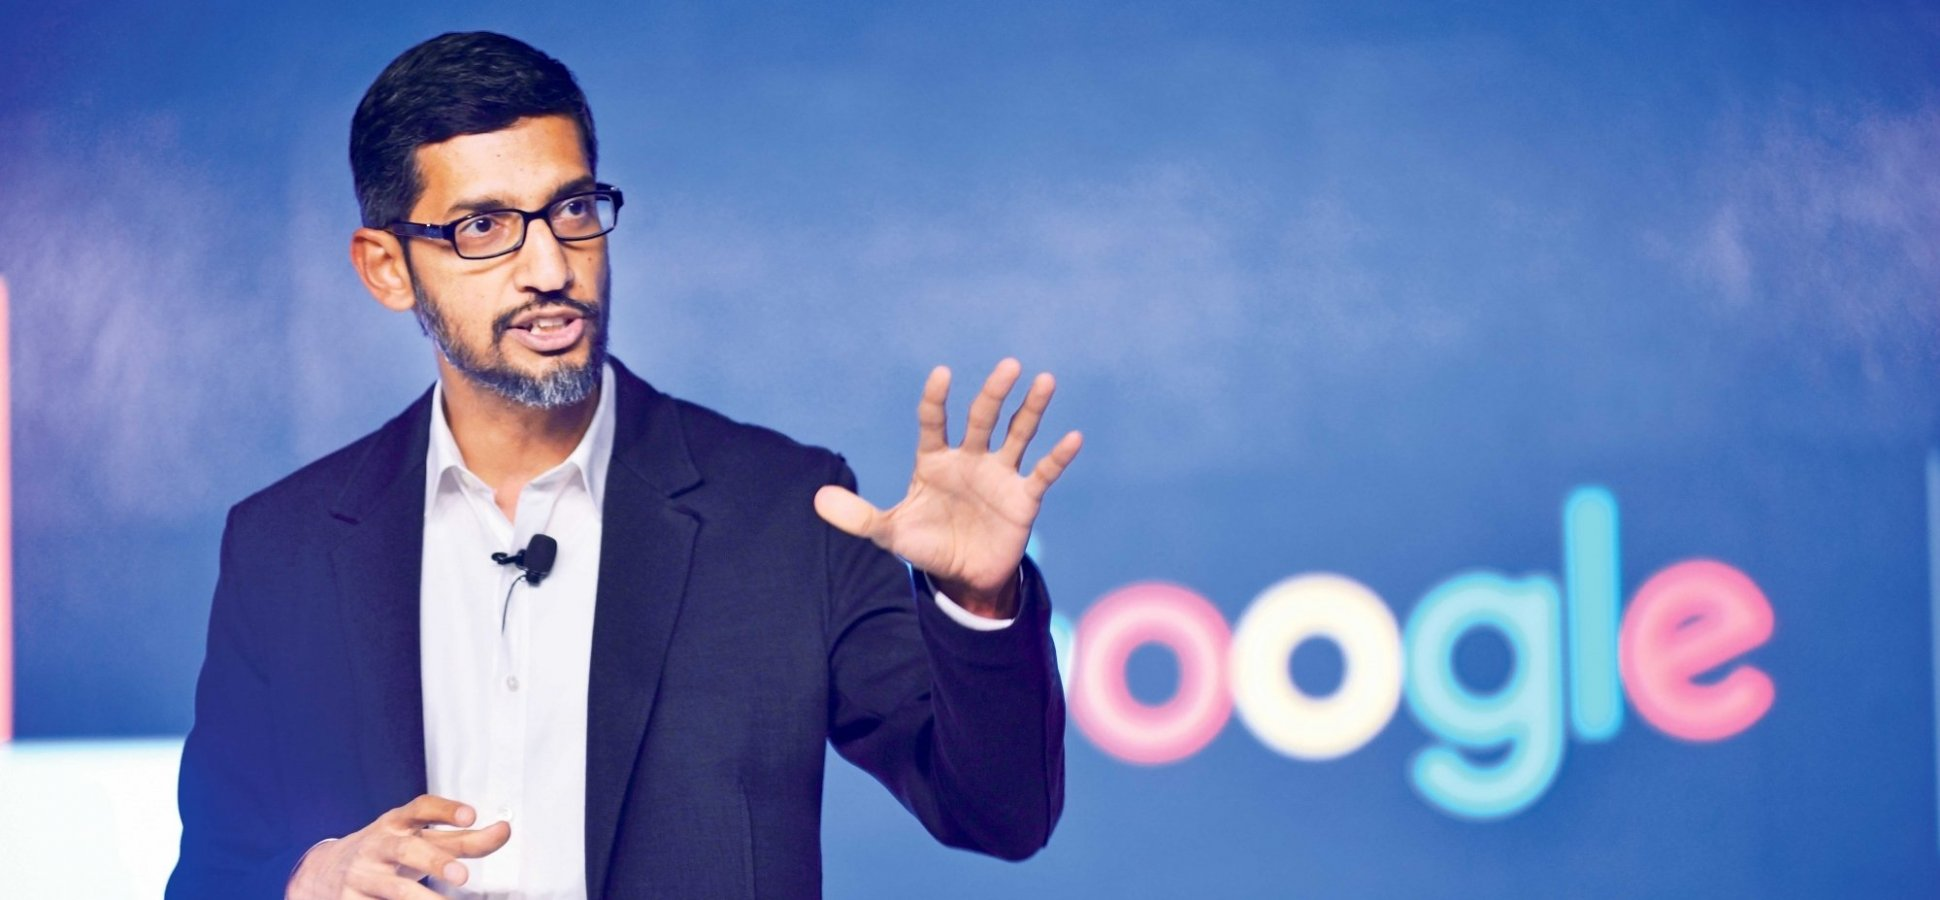 Google Spent Years Studying Effective Managers. The Most Successful Leaders Had This Mindset